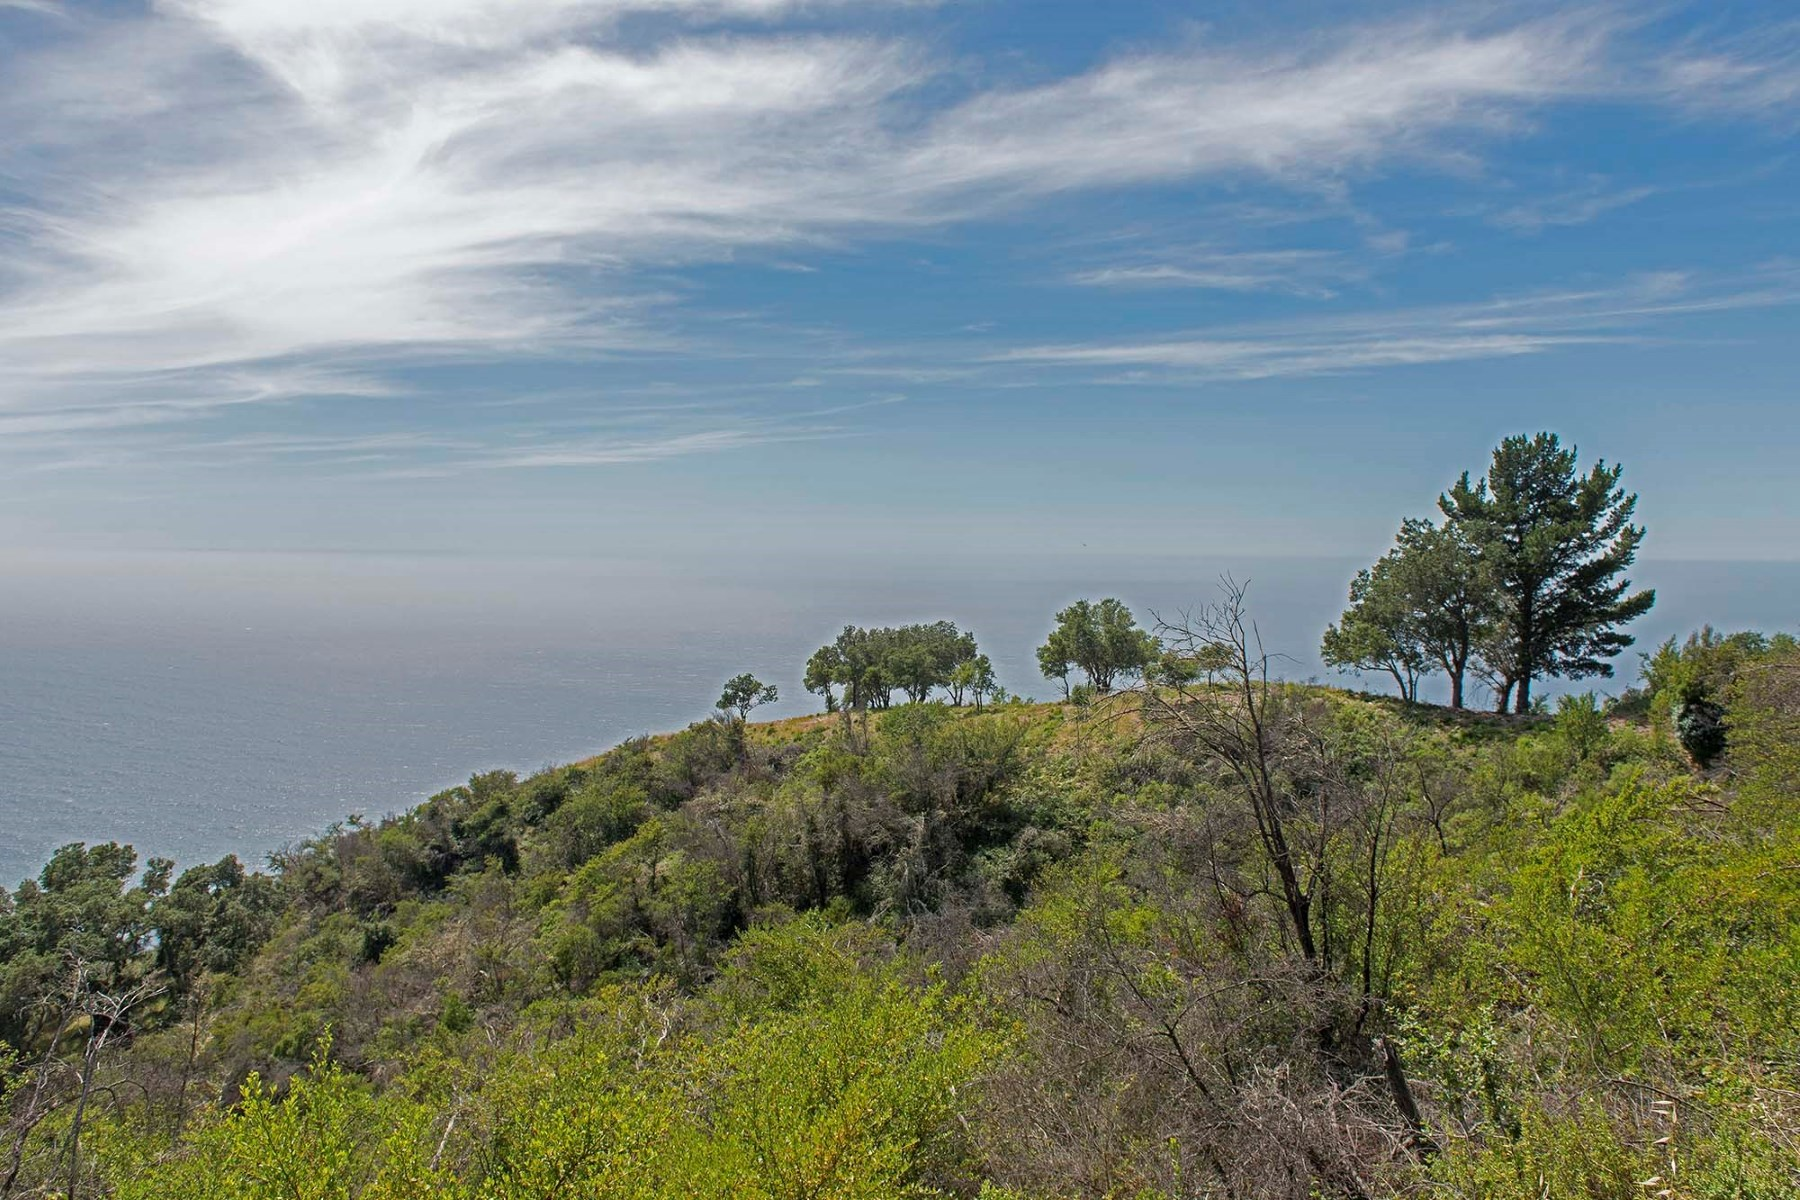 Land for Sale at Panoramic Ocean and Mountain Views Highway 1 At Santa Lucia Ranch Big Sur, California 93920 United States